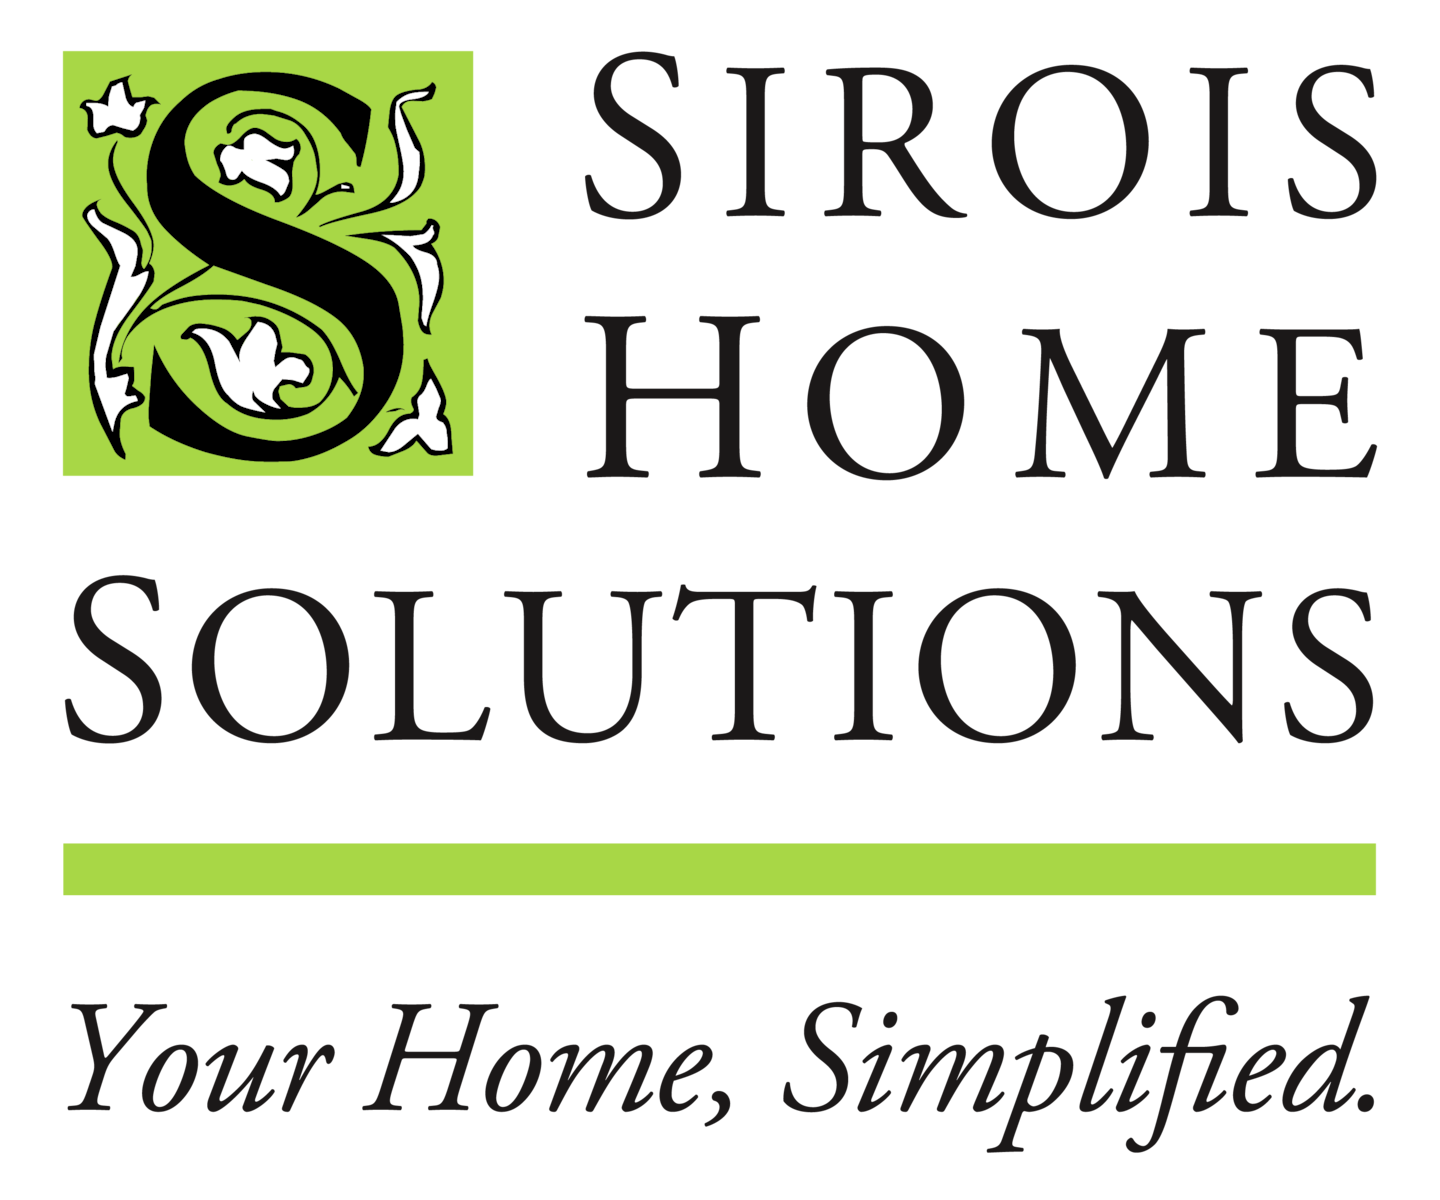 Sirois Home Solutions